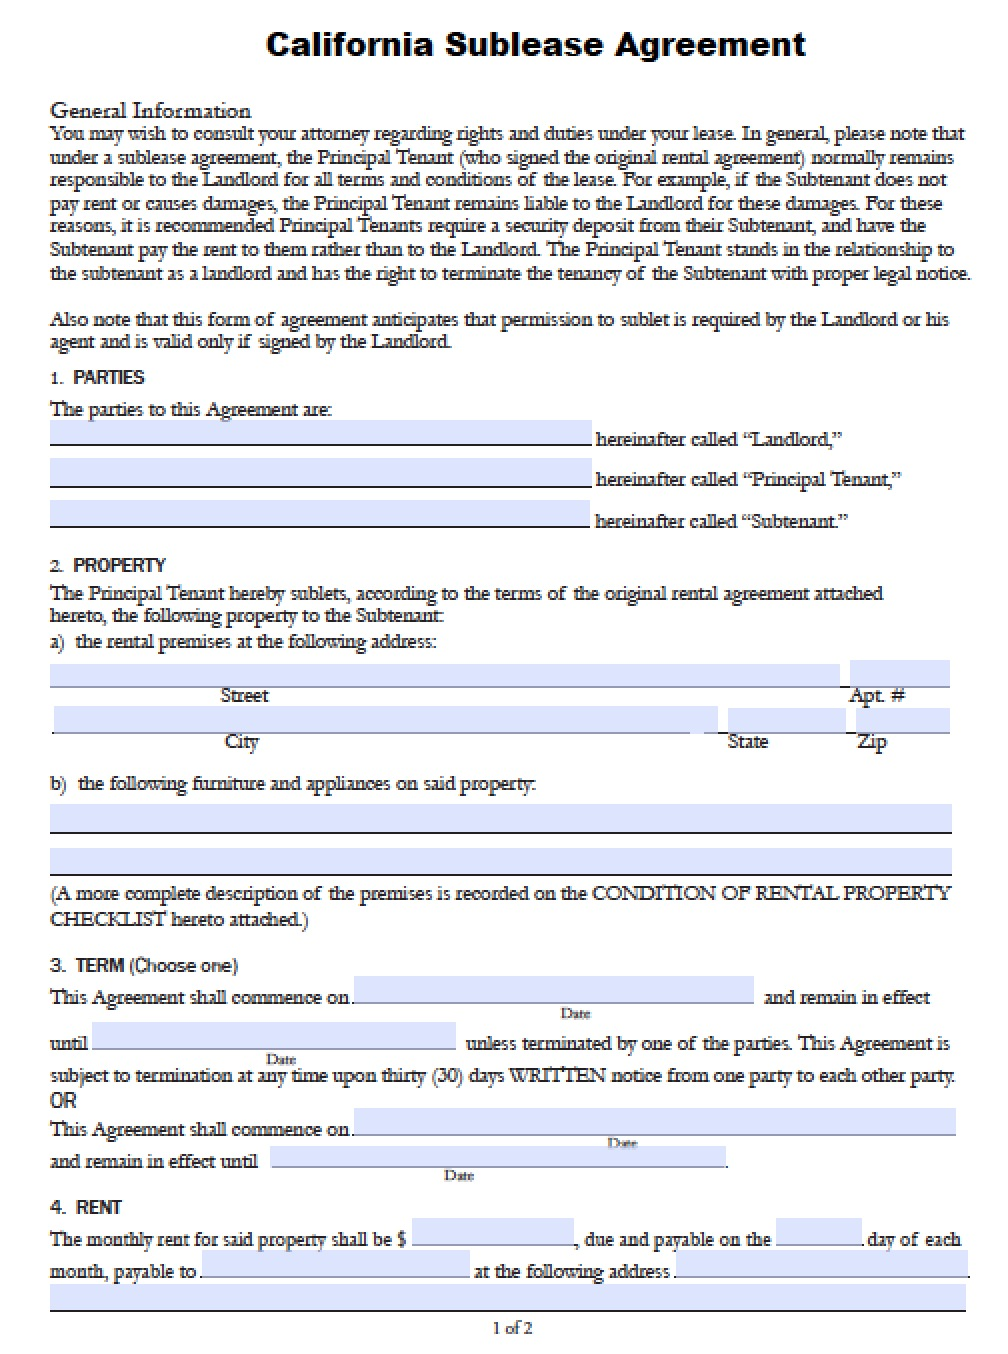 California Sublease Agreement Version #2 | Adobe PDF | Microsoft Word  Microsoft Word Rental Agreement